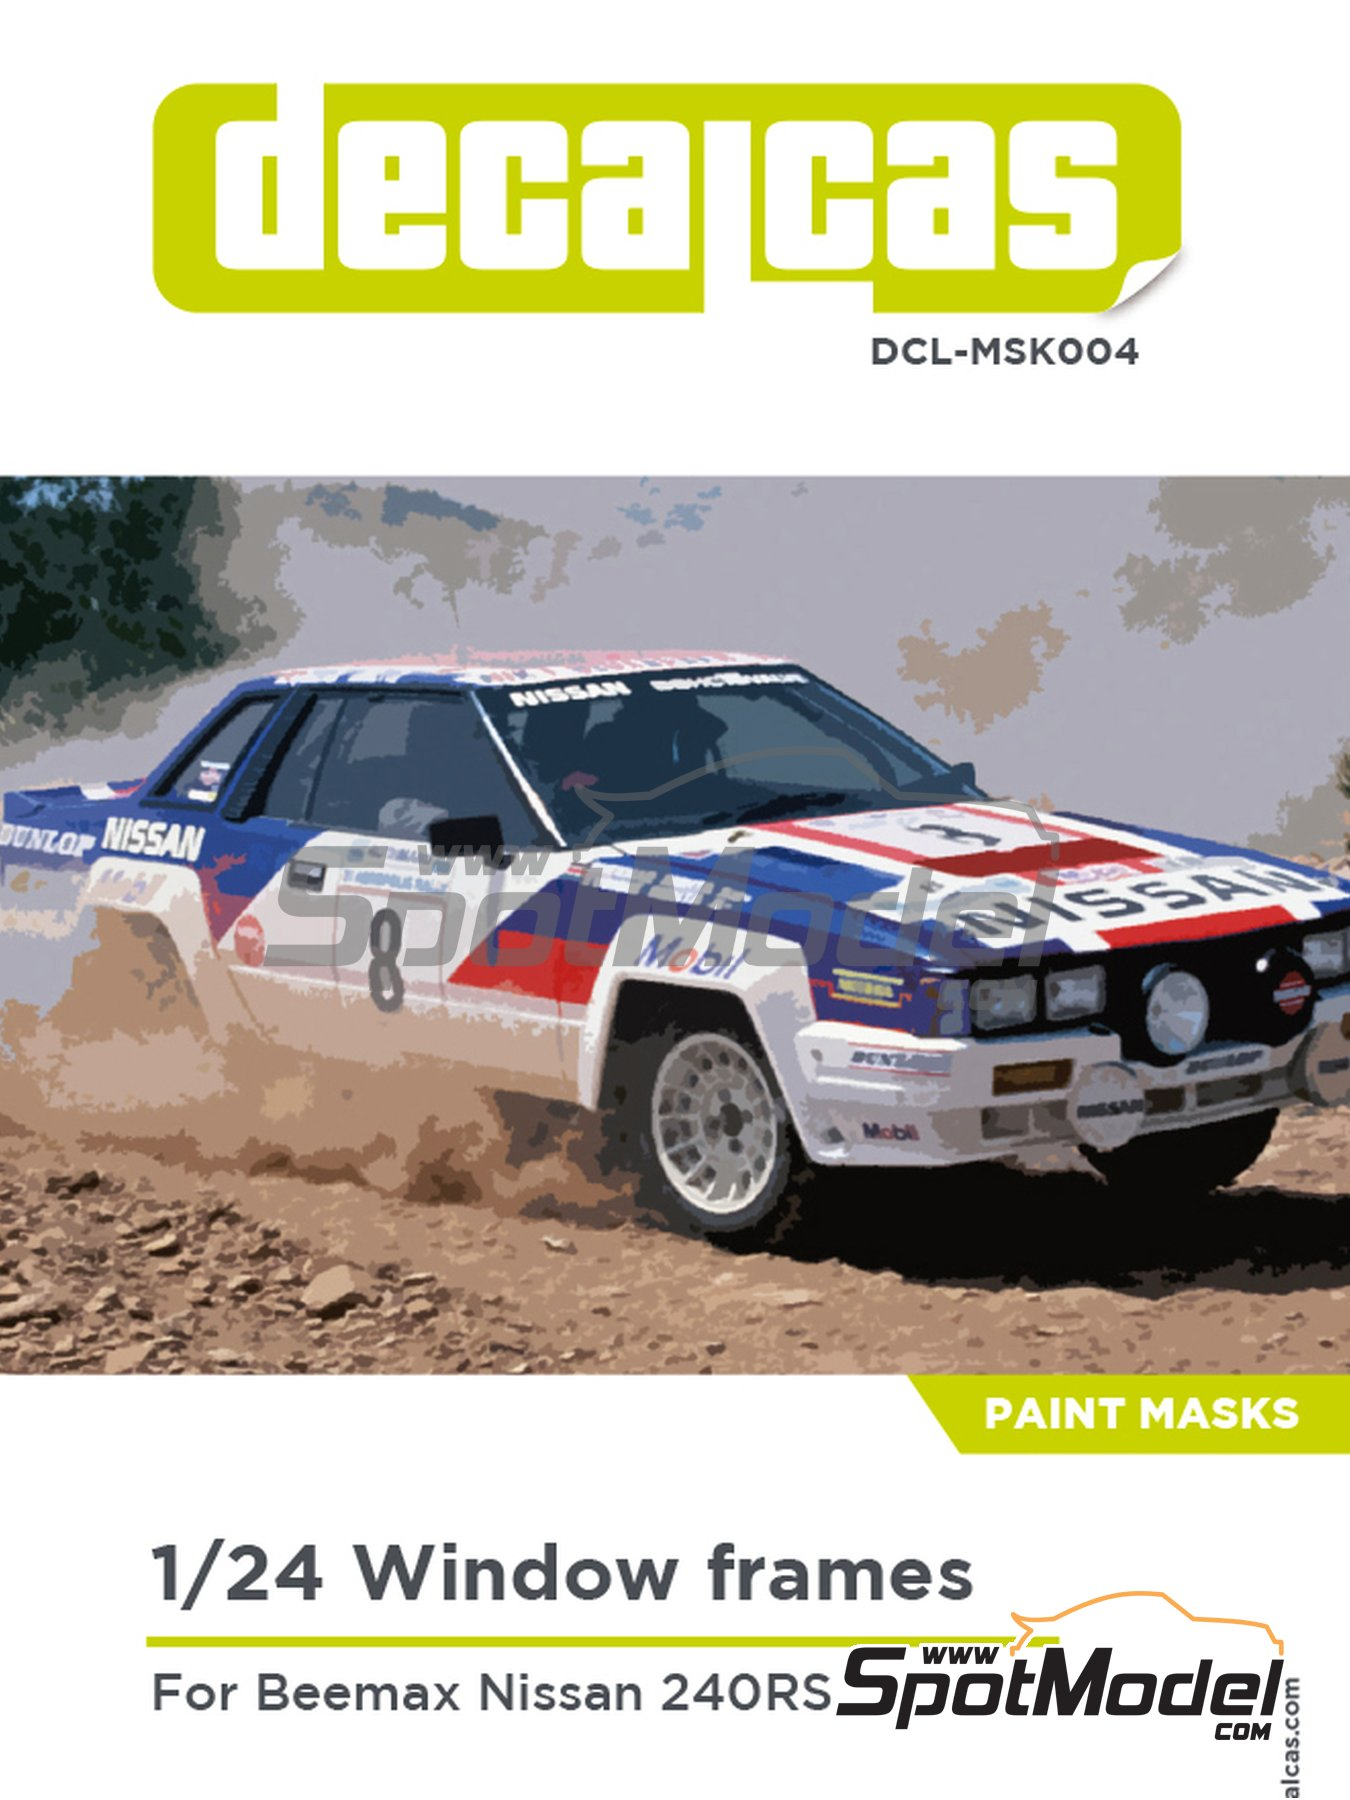 Nissan 240RS | Window frame paint masks in 1/24 scale manufactured by Decalcas (ref. DCL-MSK004) image